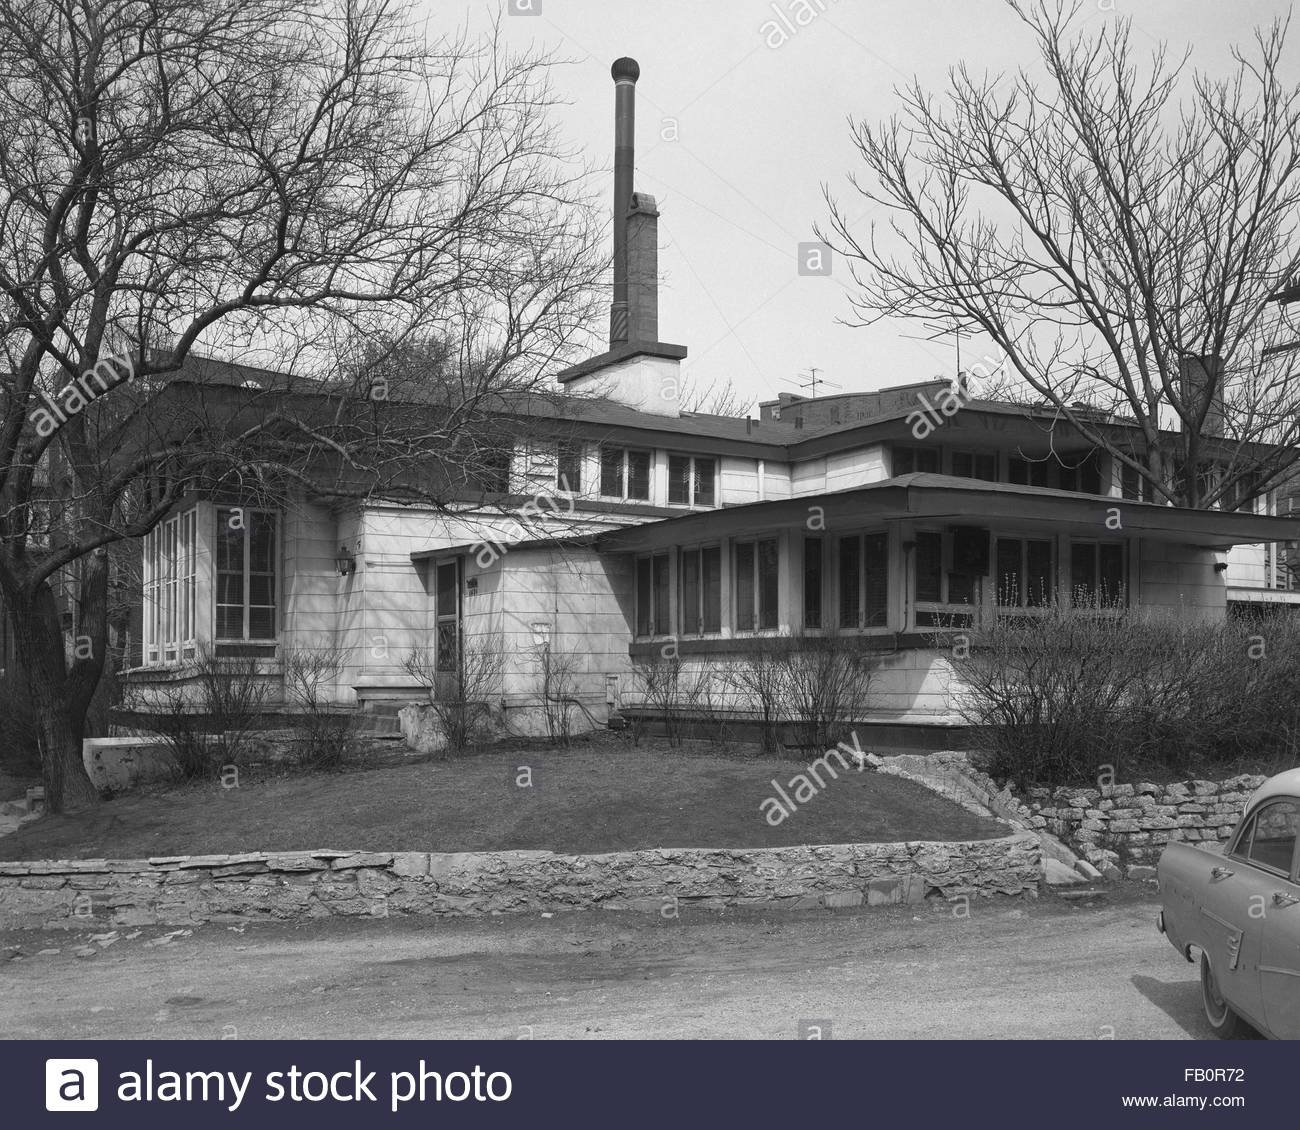 Oscar Steffens residence in Chicago (Ill.), 1963. Angled view of the house from the street. - Stock Image